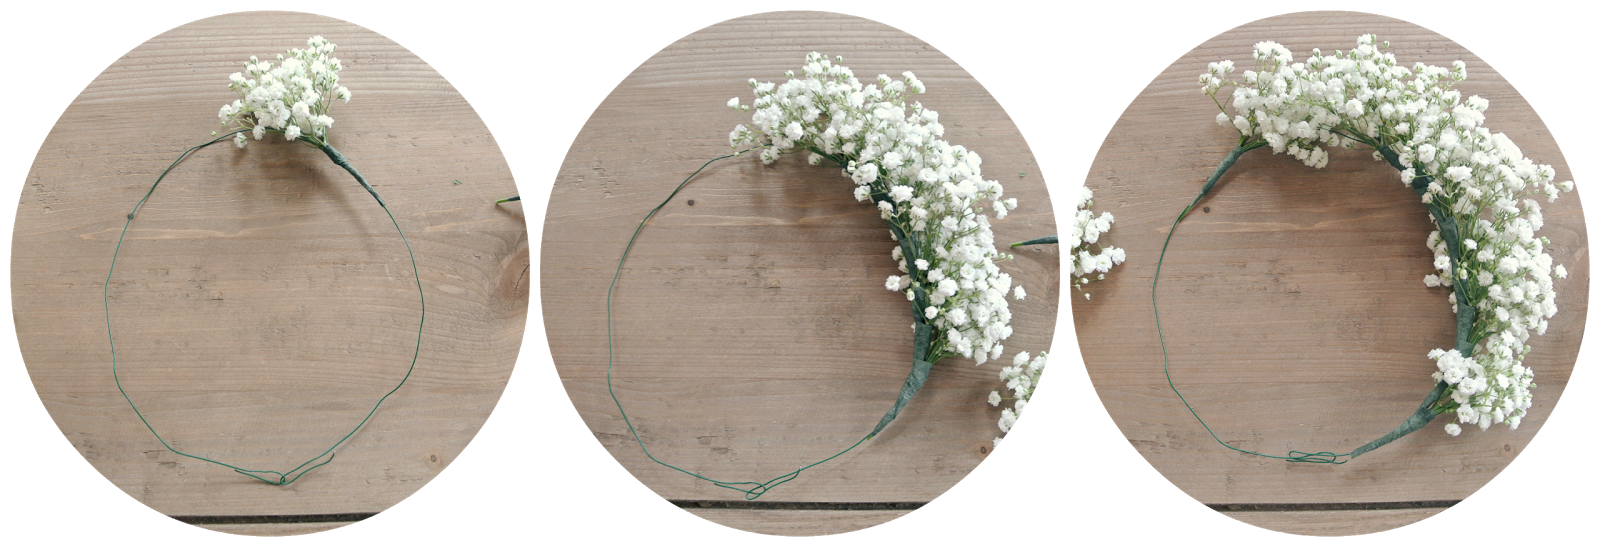 Pittsburgh In Polka Dots Baby S Breath Flower Crown Diy Diy Flower Crown Diy Crown Flower Crown